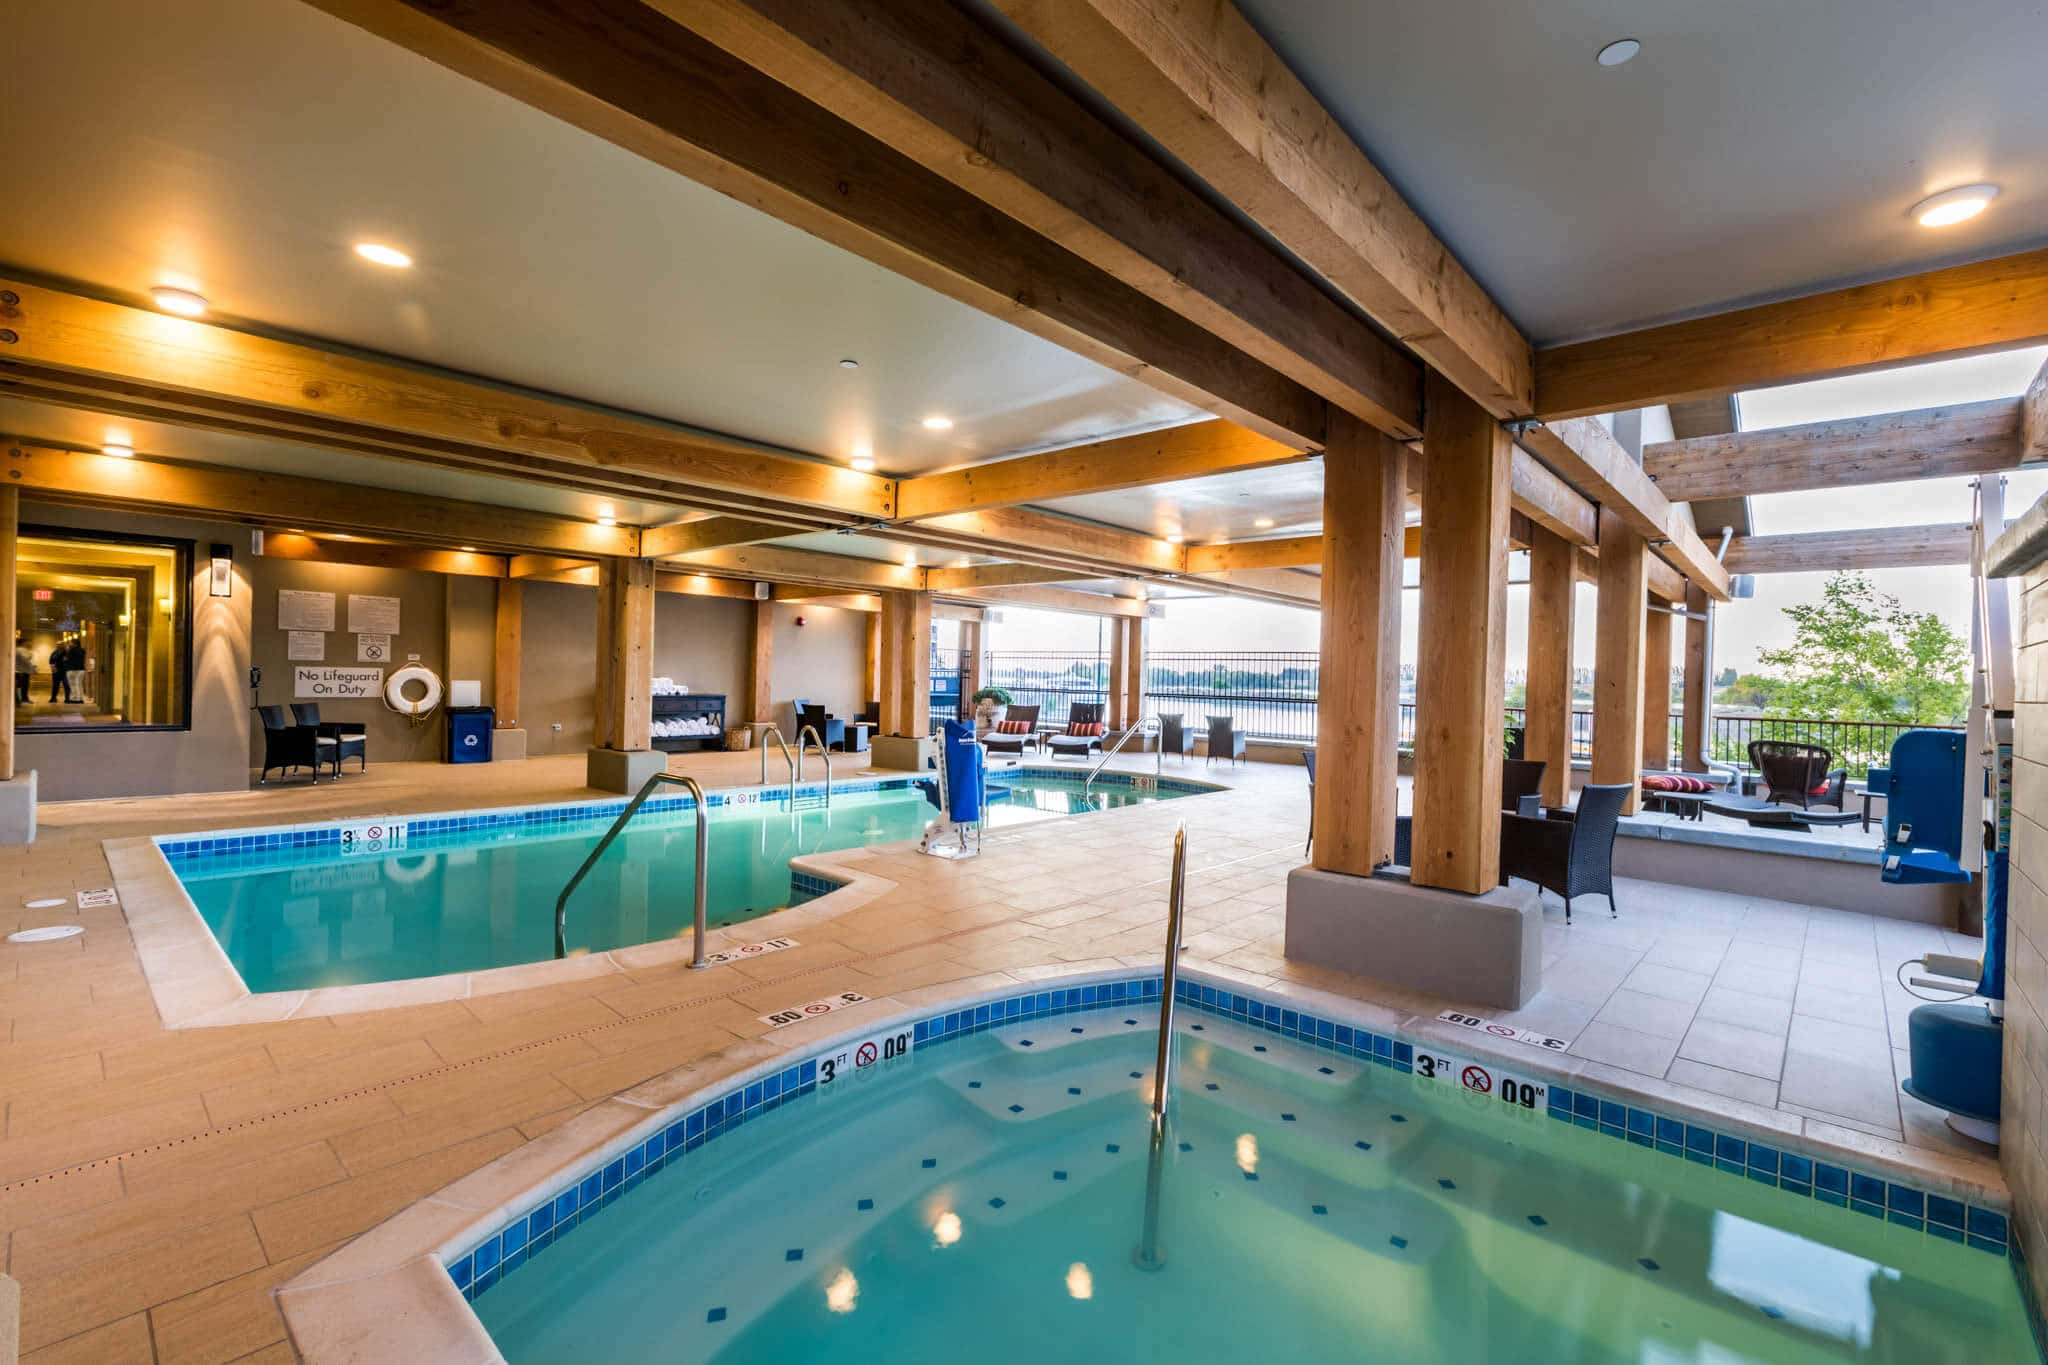 Fun for the entire family when you stay at The Lodge at Columbia Point